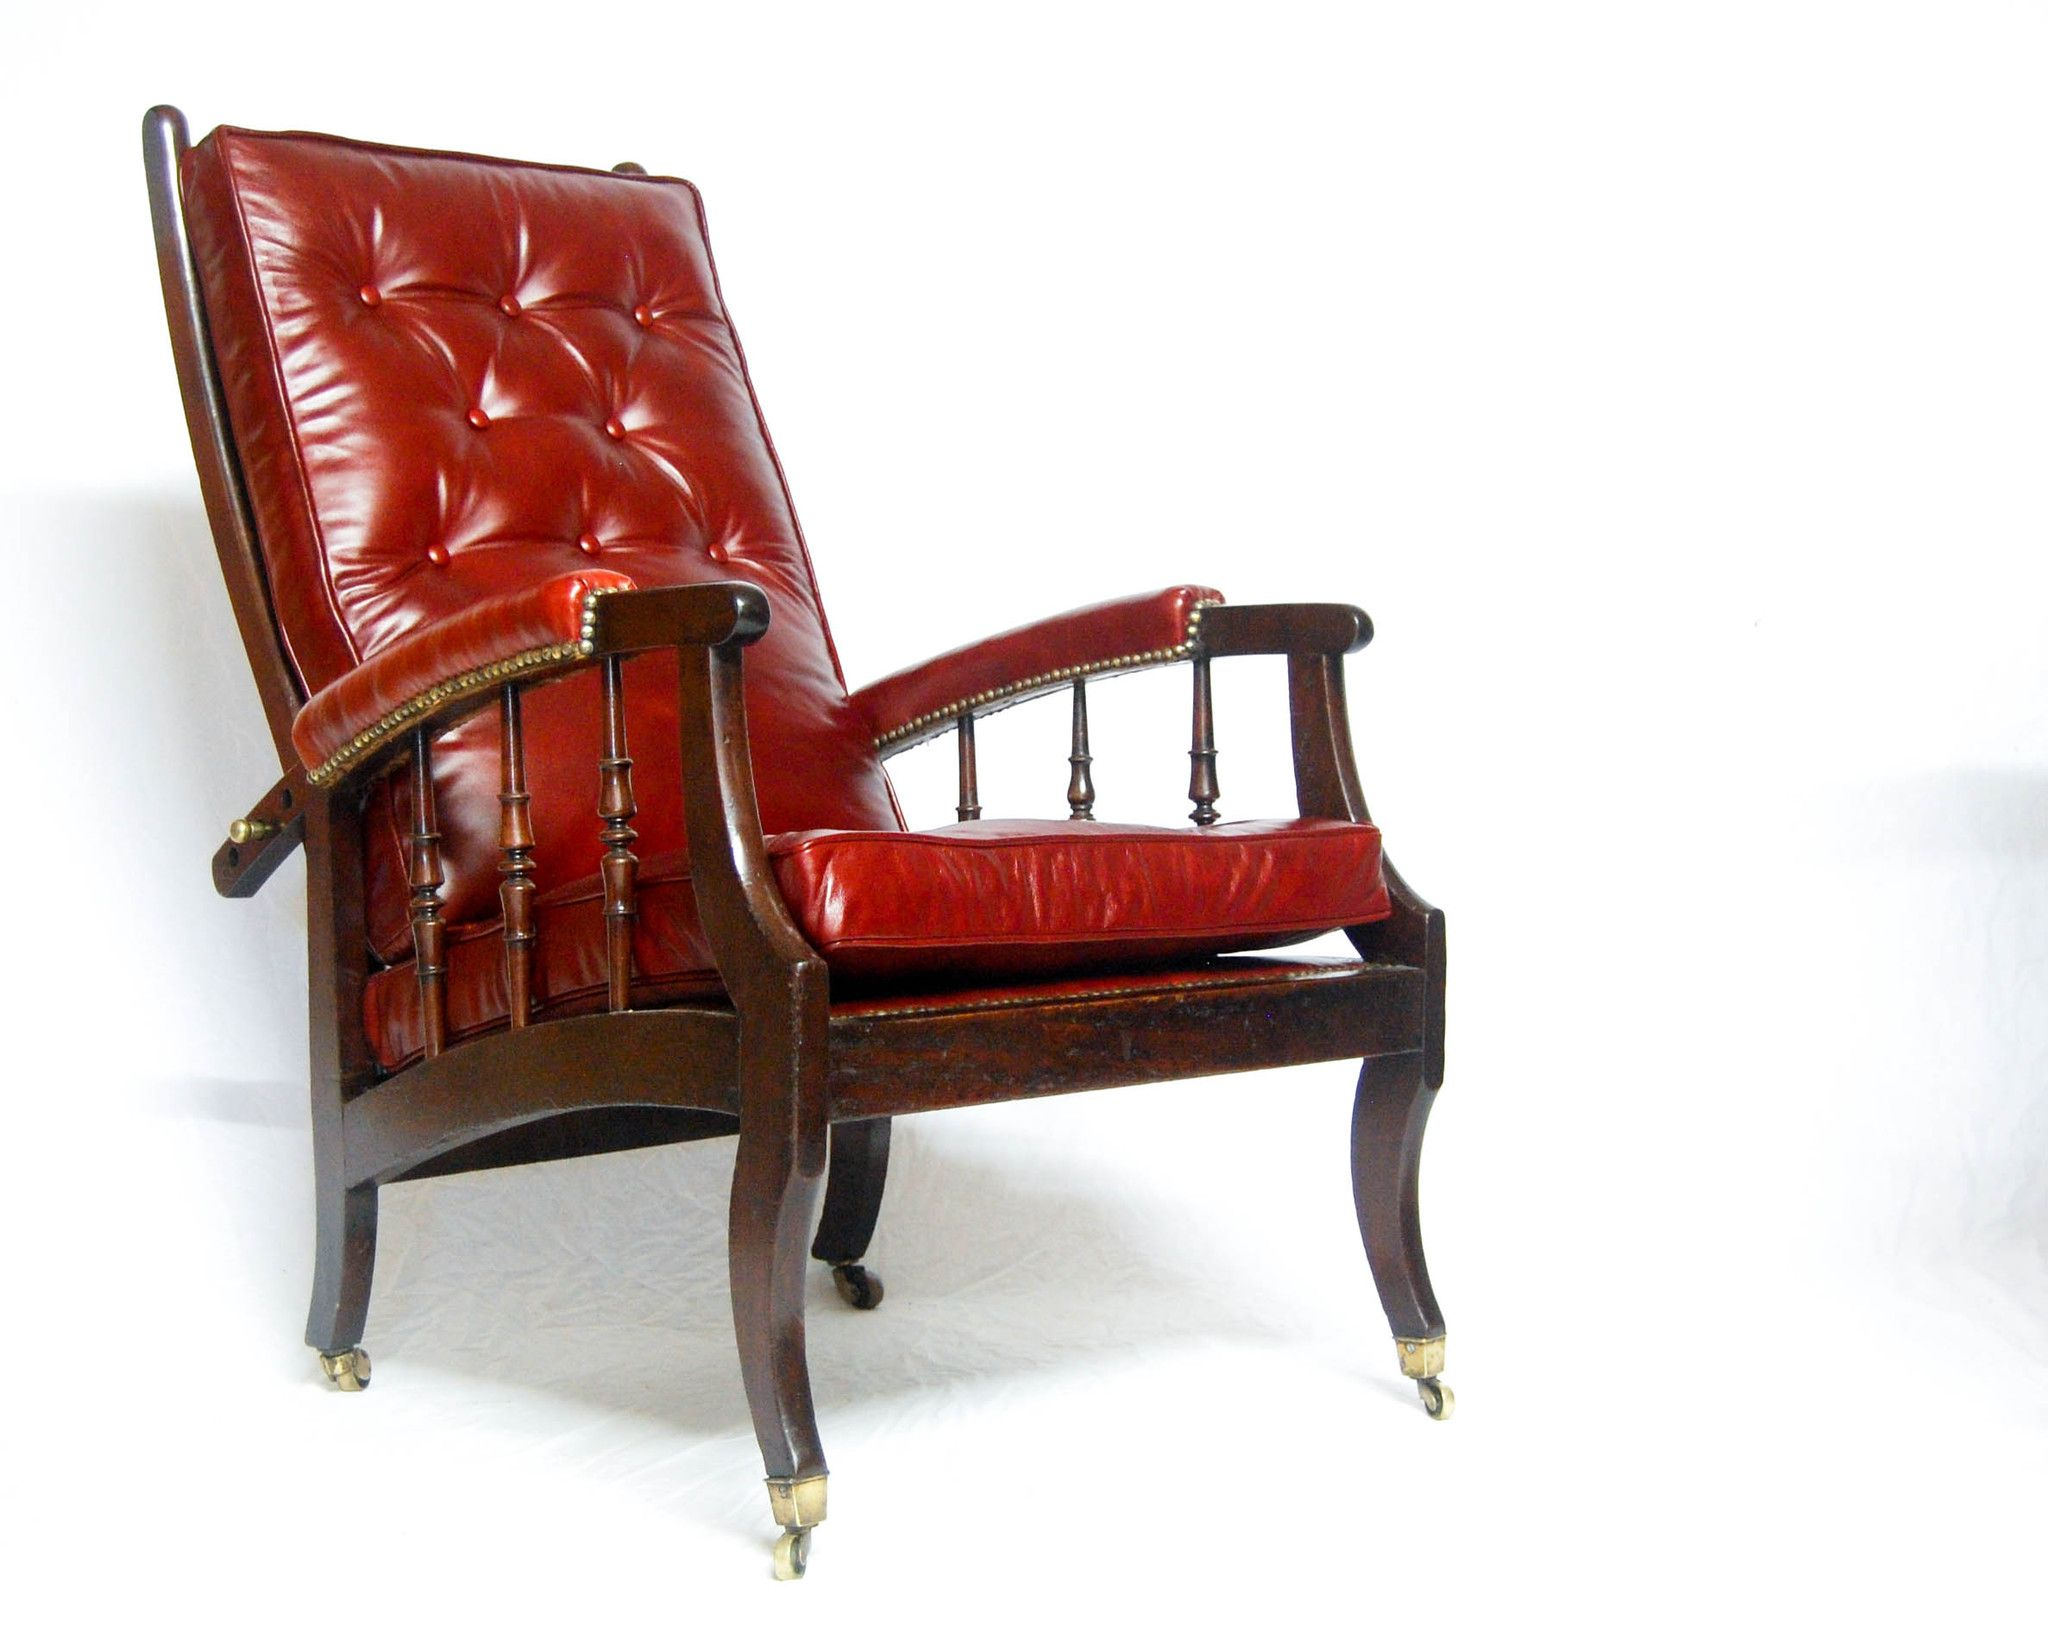 Morris chair cushions - Late Victorian Adjustable Morris Co Style Reclining Armchair With Leather Cushions